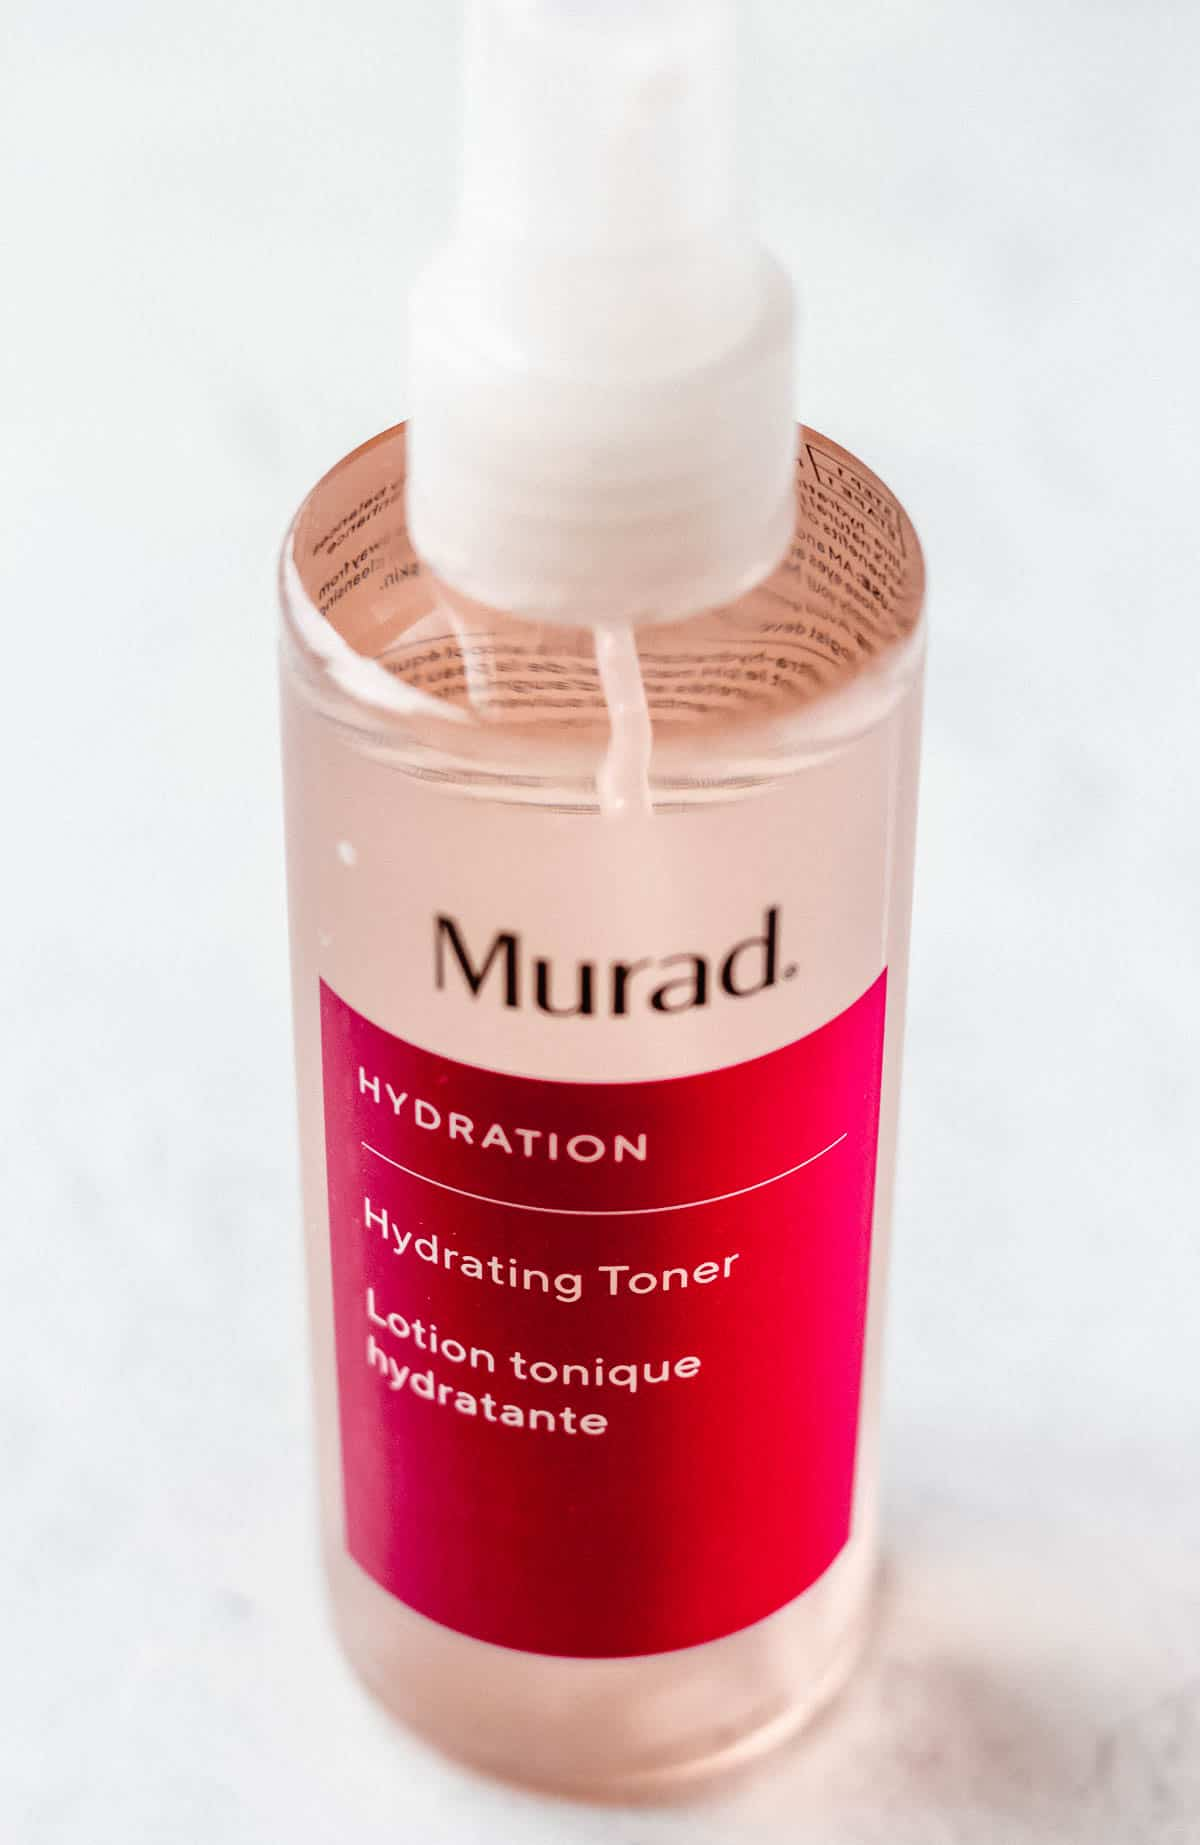 Murad hydrating toner on a white background